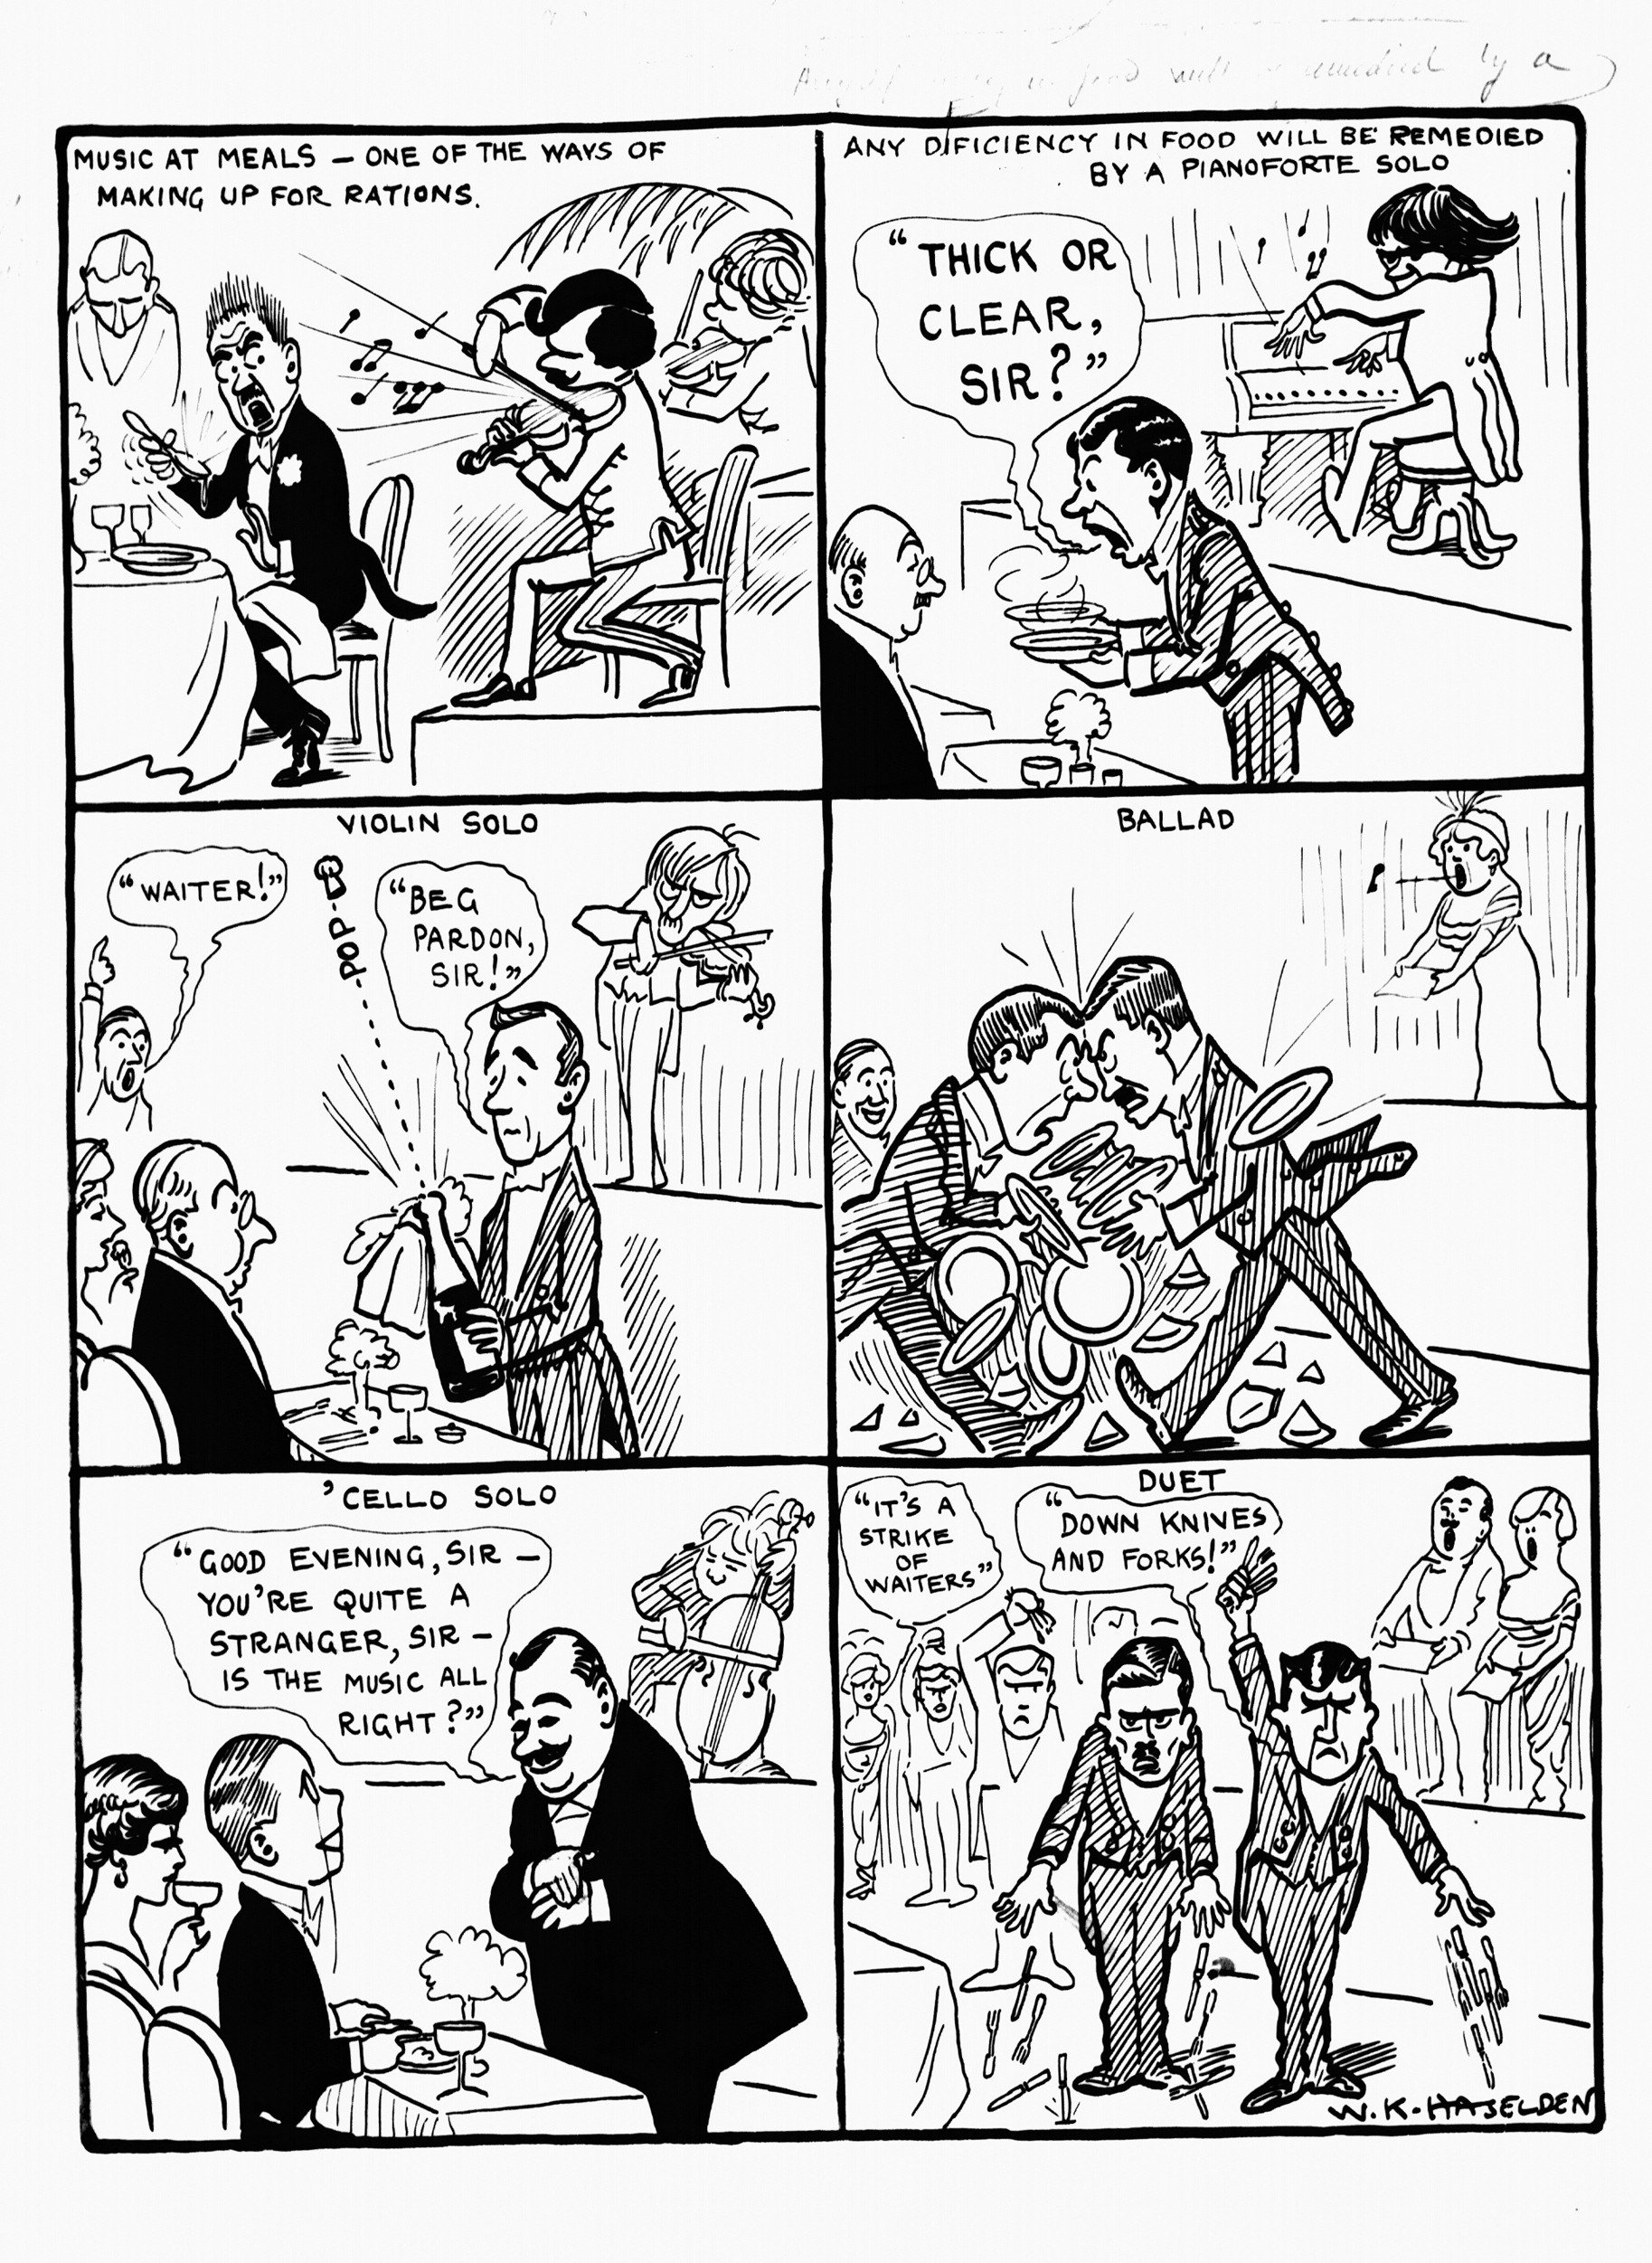 Cartoon by W.K. Haselden showing the excesses of combining musical performance with food